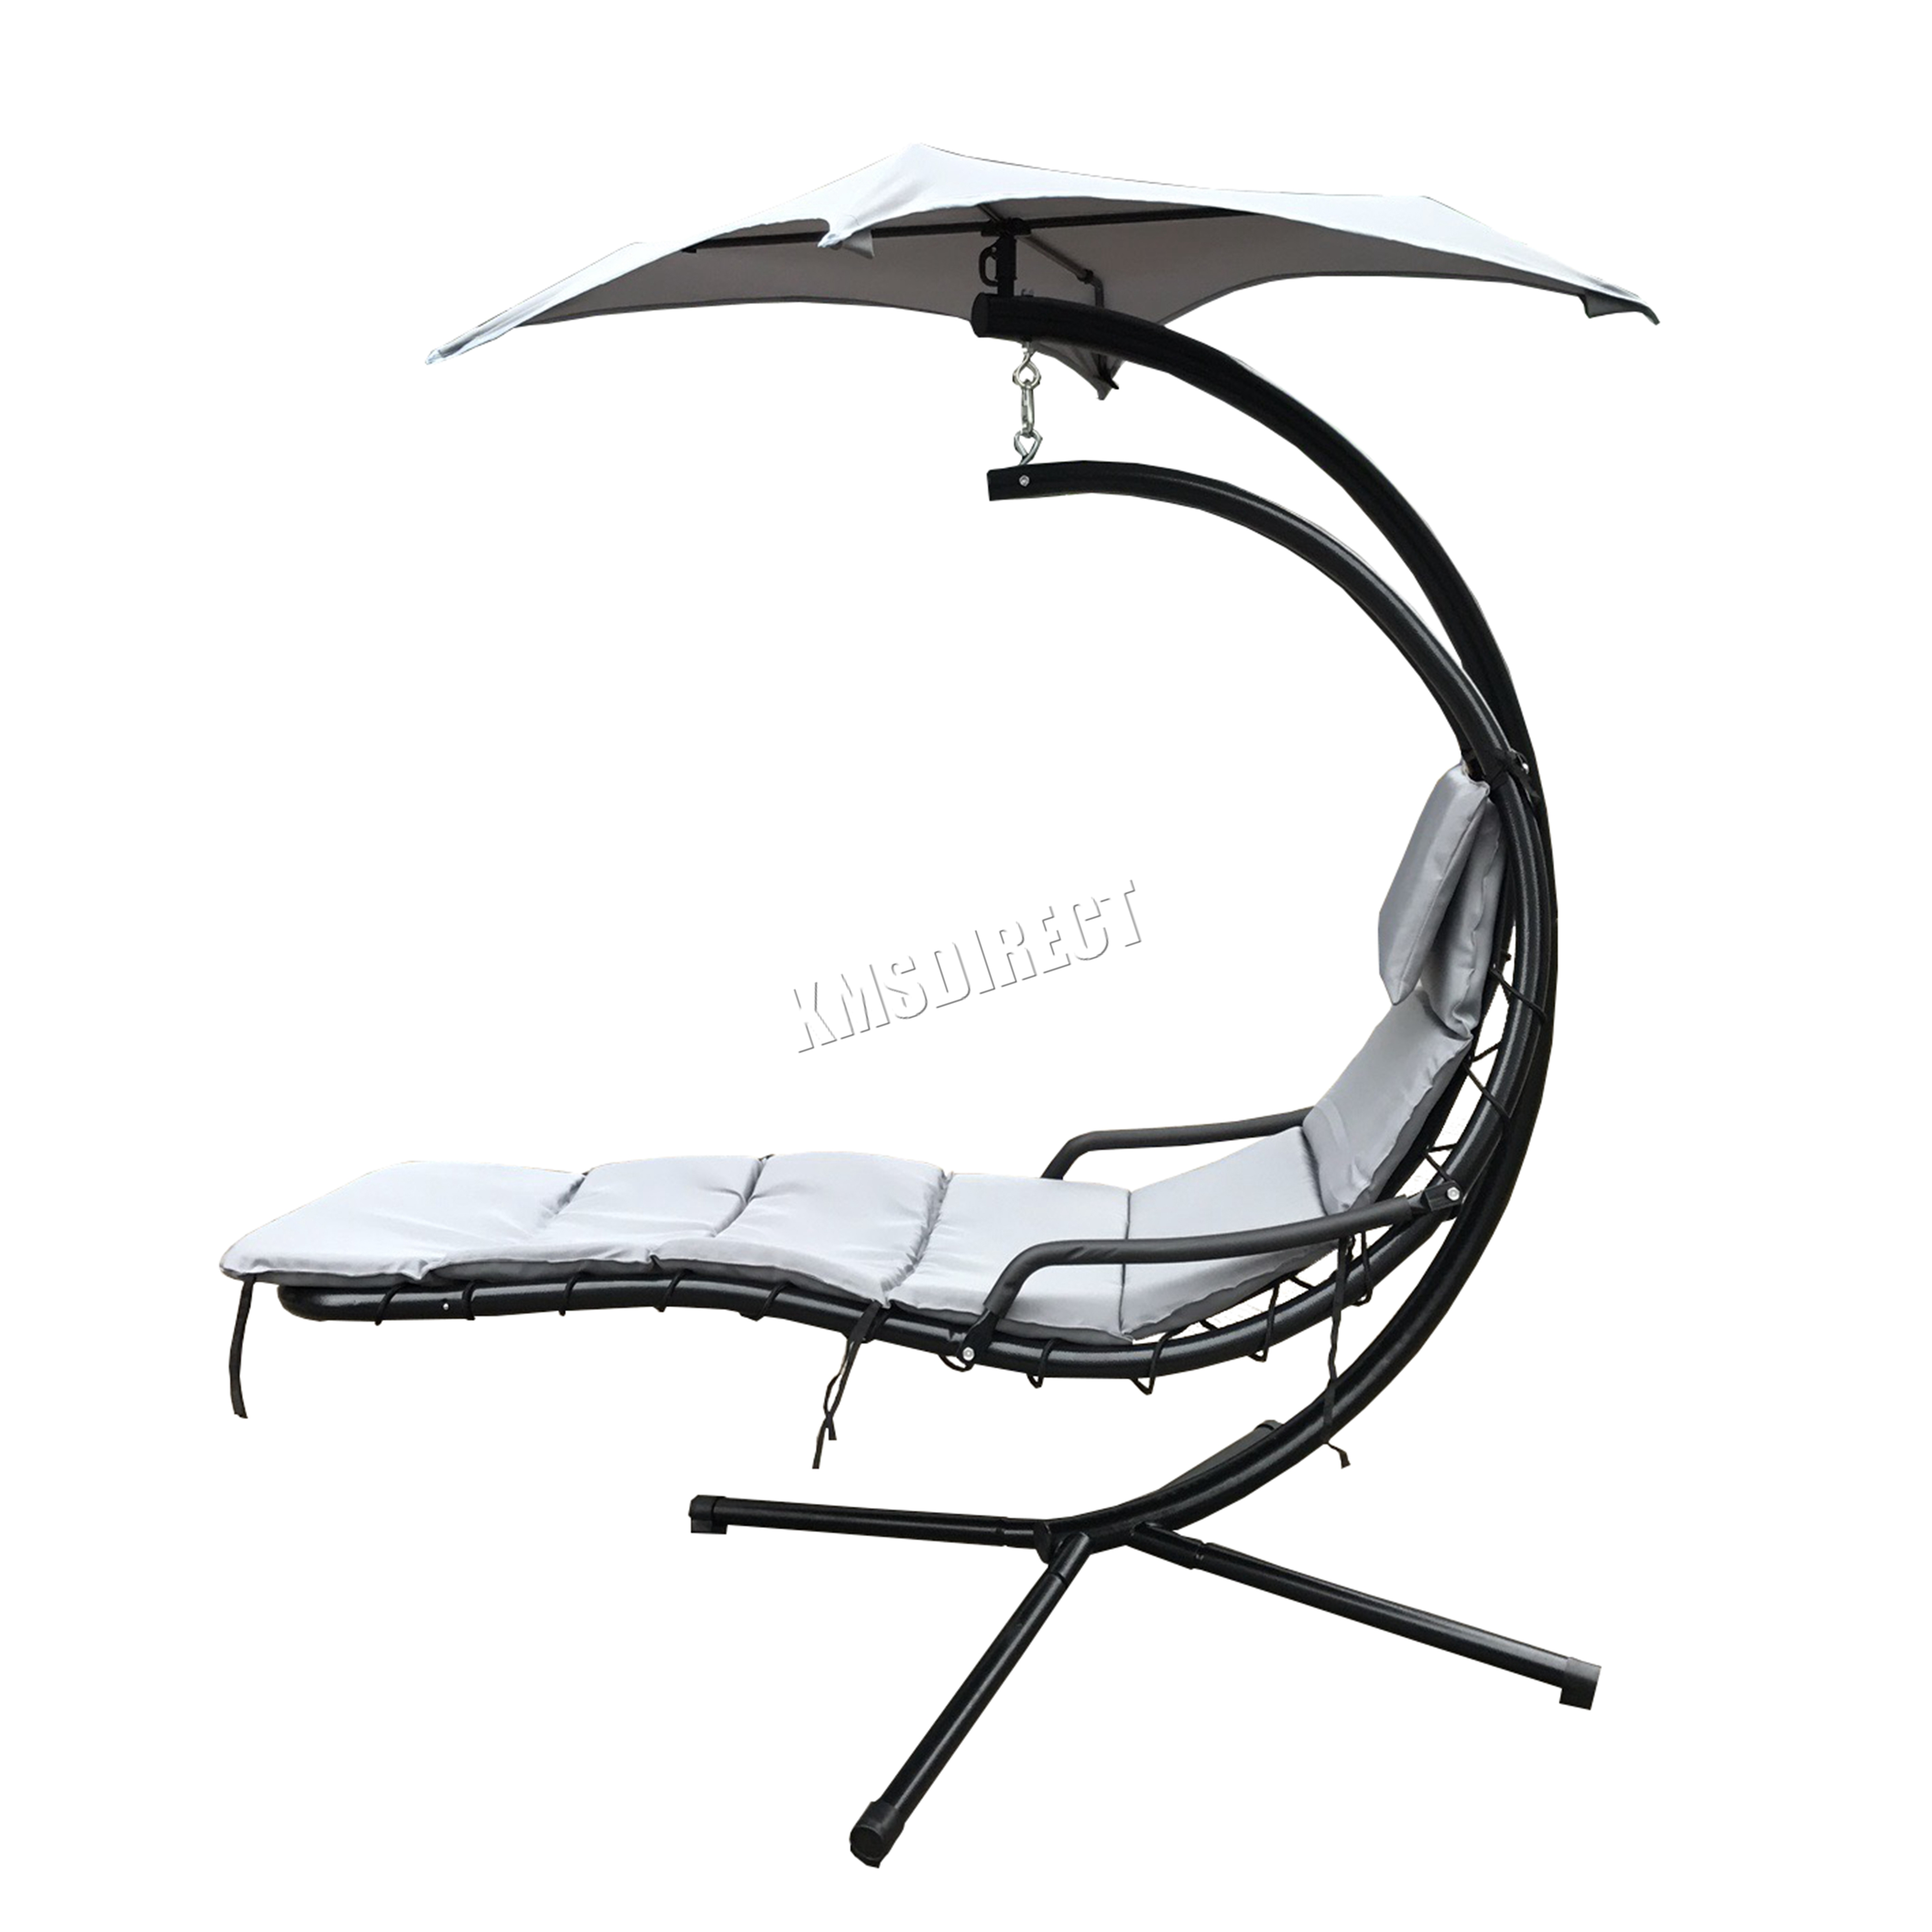 foxhunter garten au en hubschrauber traum stuhl schaukel h ngematte sonne liege ebay. Black Bedroom Furniture Sets. Home Design Ideas